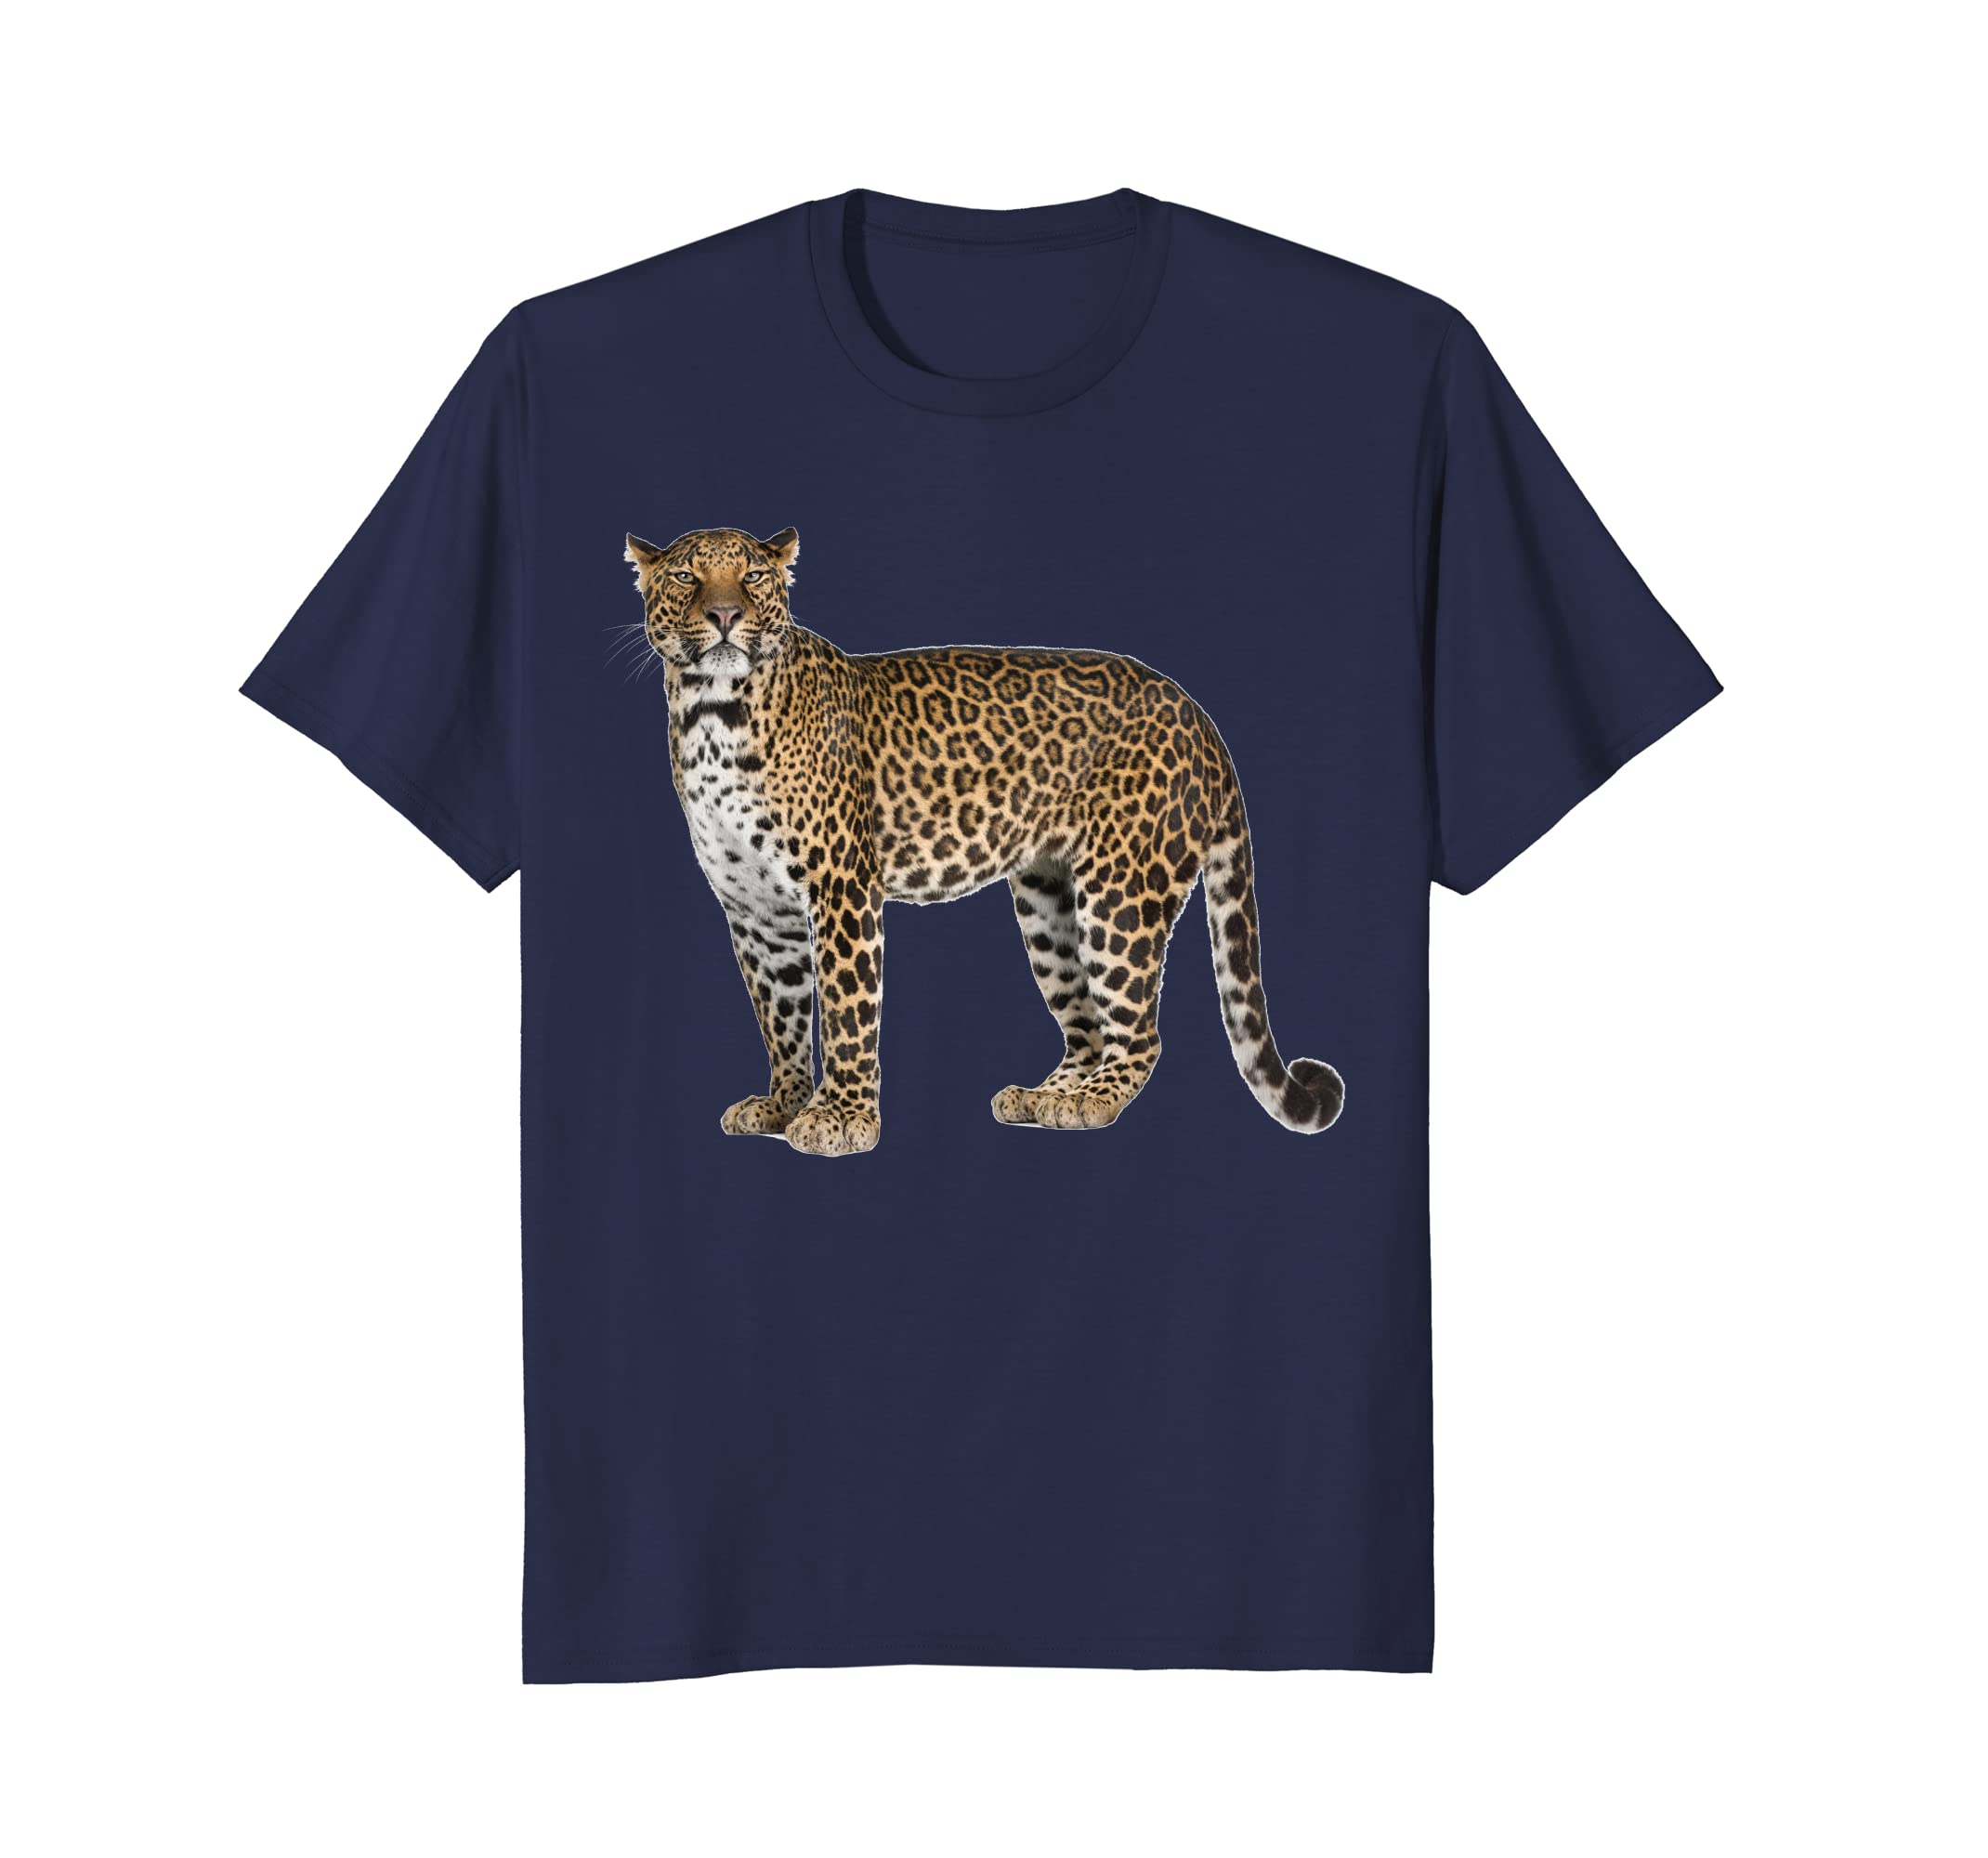 A Leopard Shirt A Leopard Is A Powerful Hunting Kitty Cat-AZP